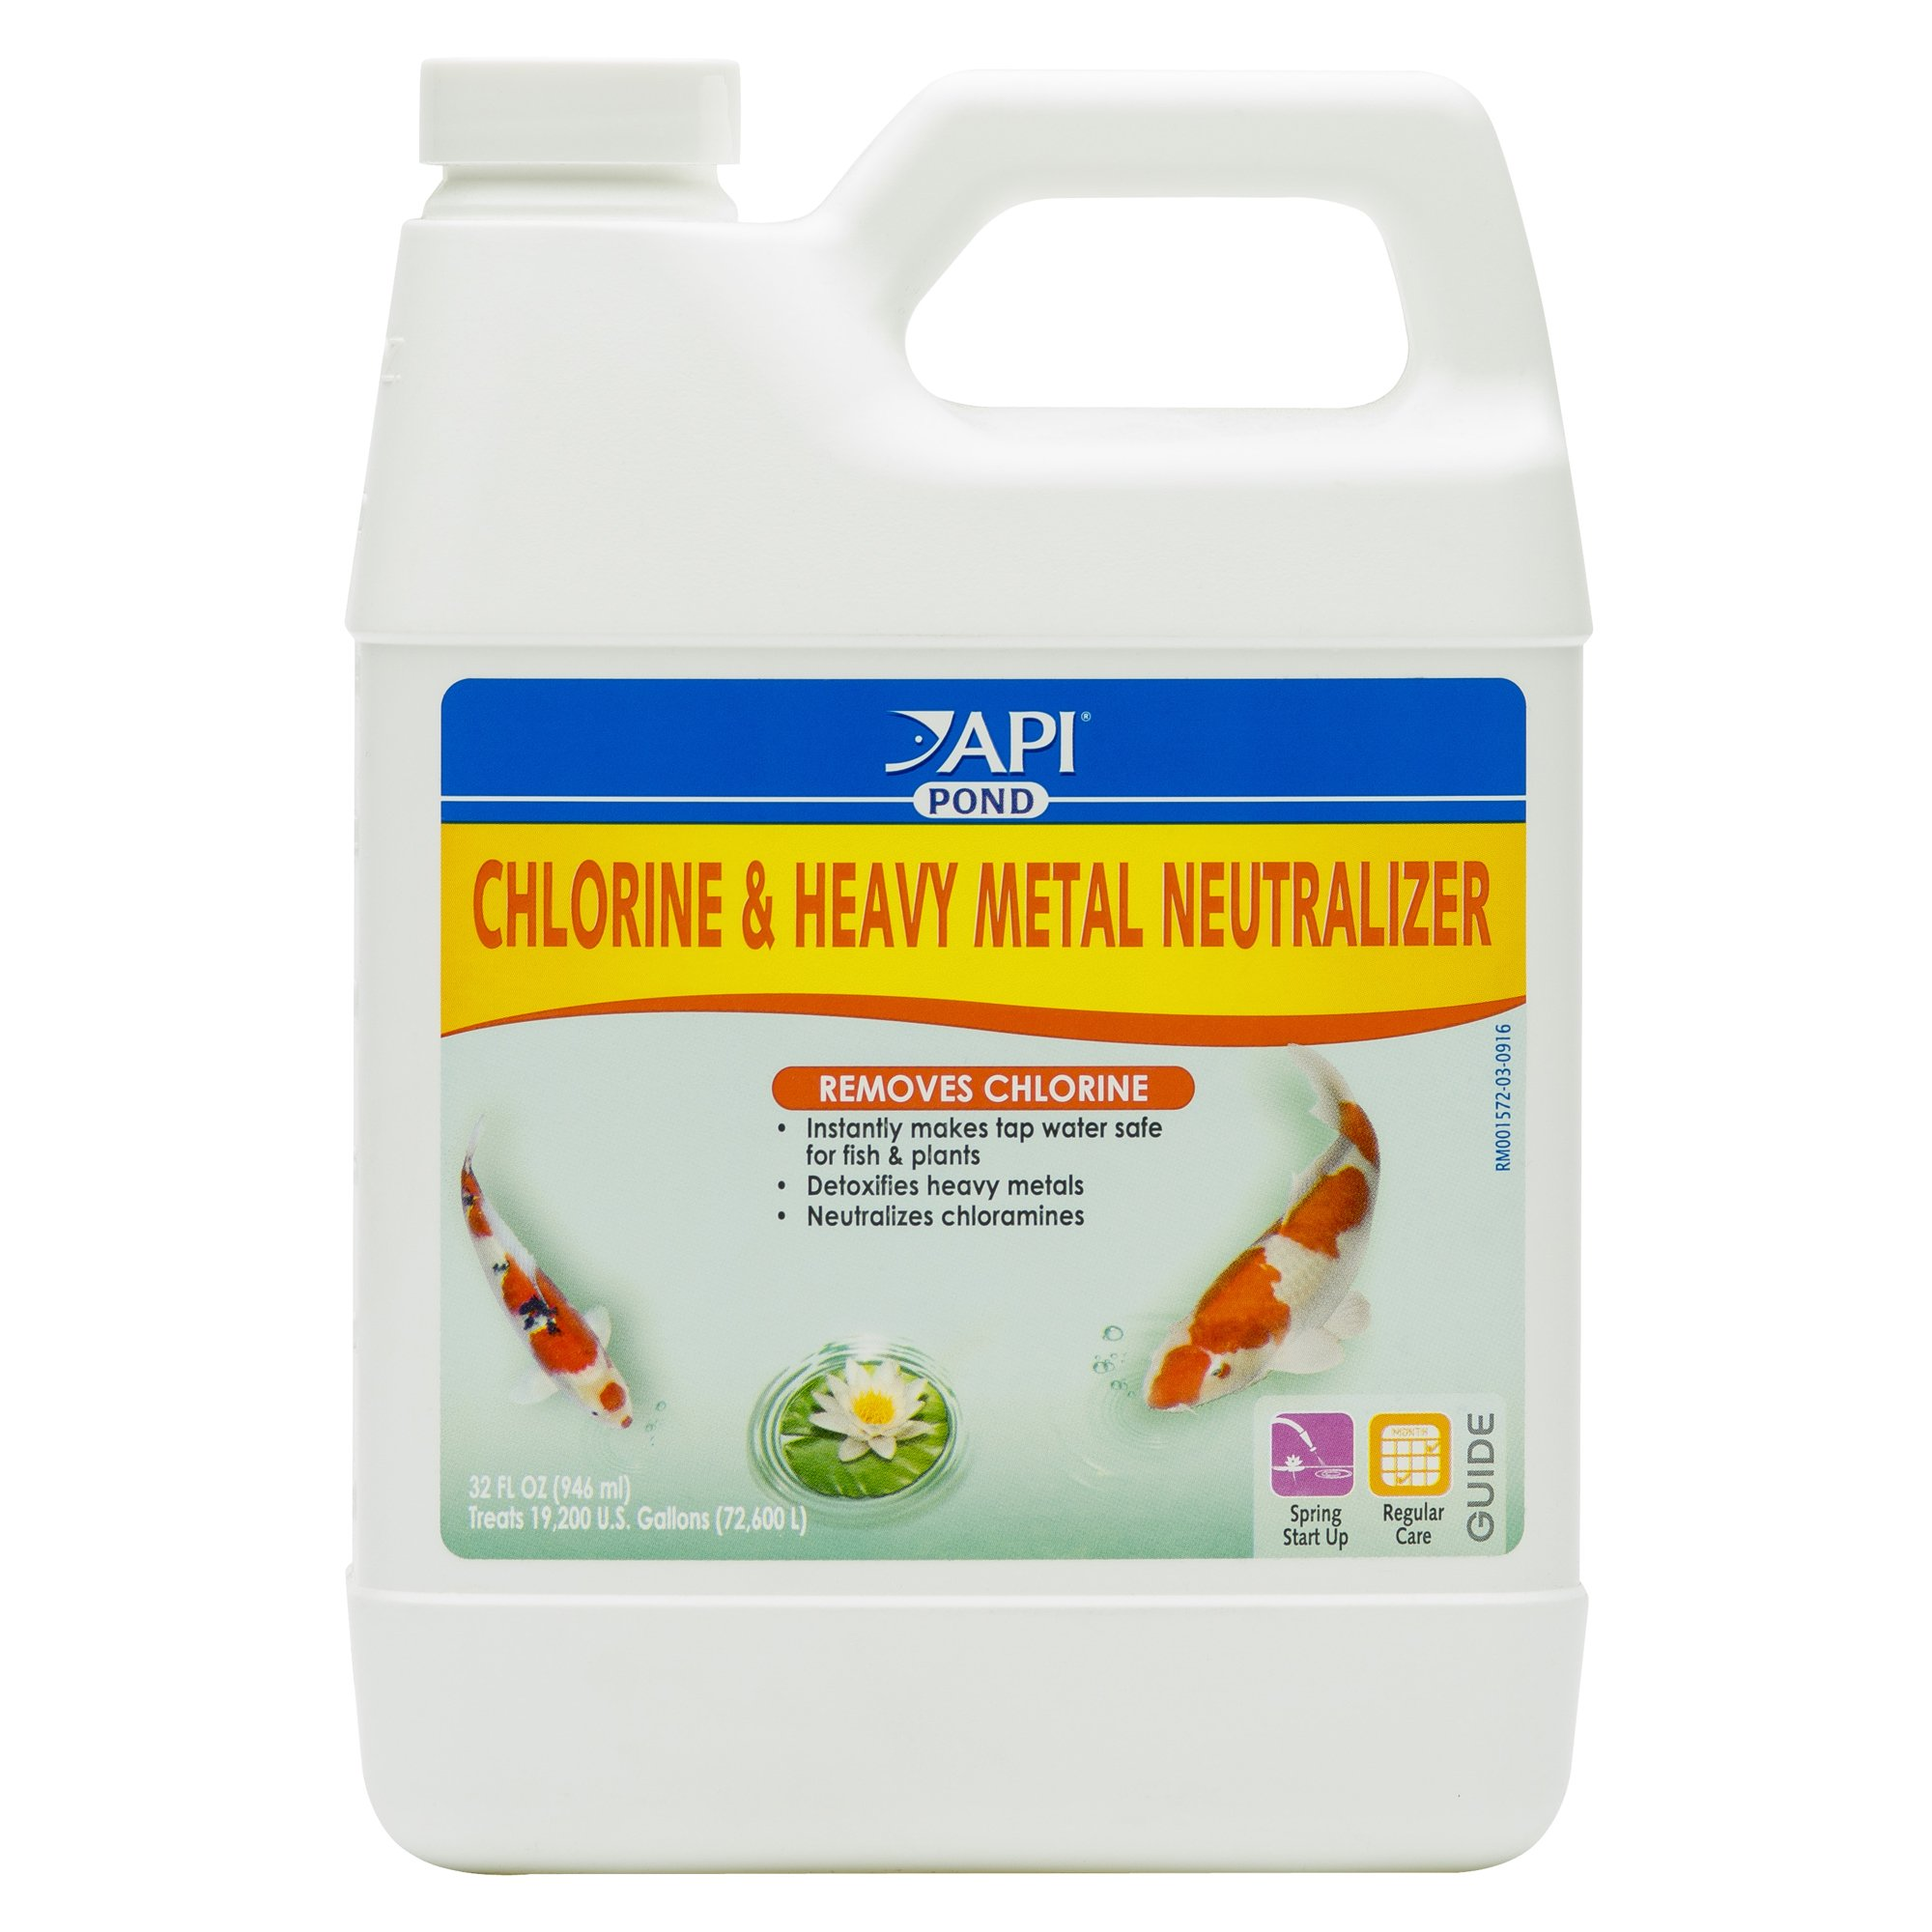 API POND CHLORINE & HEAVY METAL NEUTRALIZER Pond Water Neutralizer 32-Ounce Bottle by API